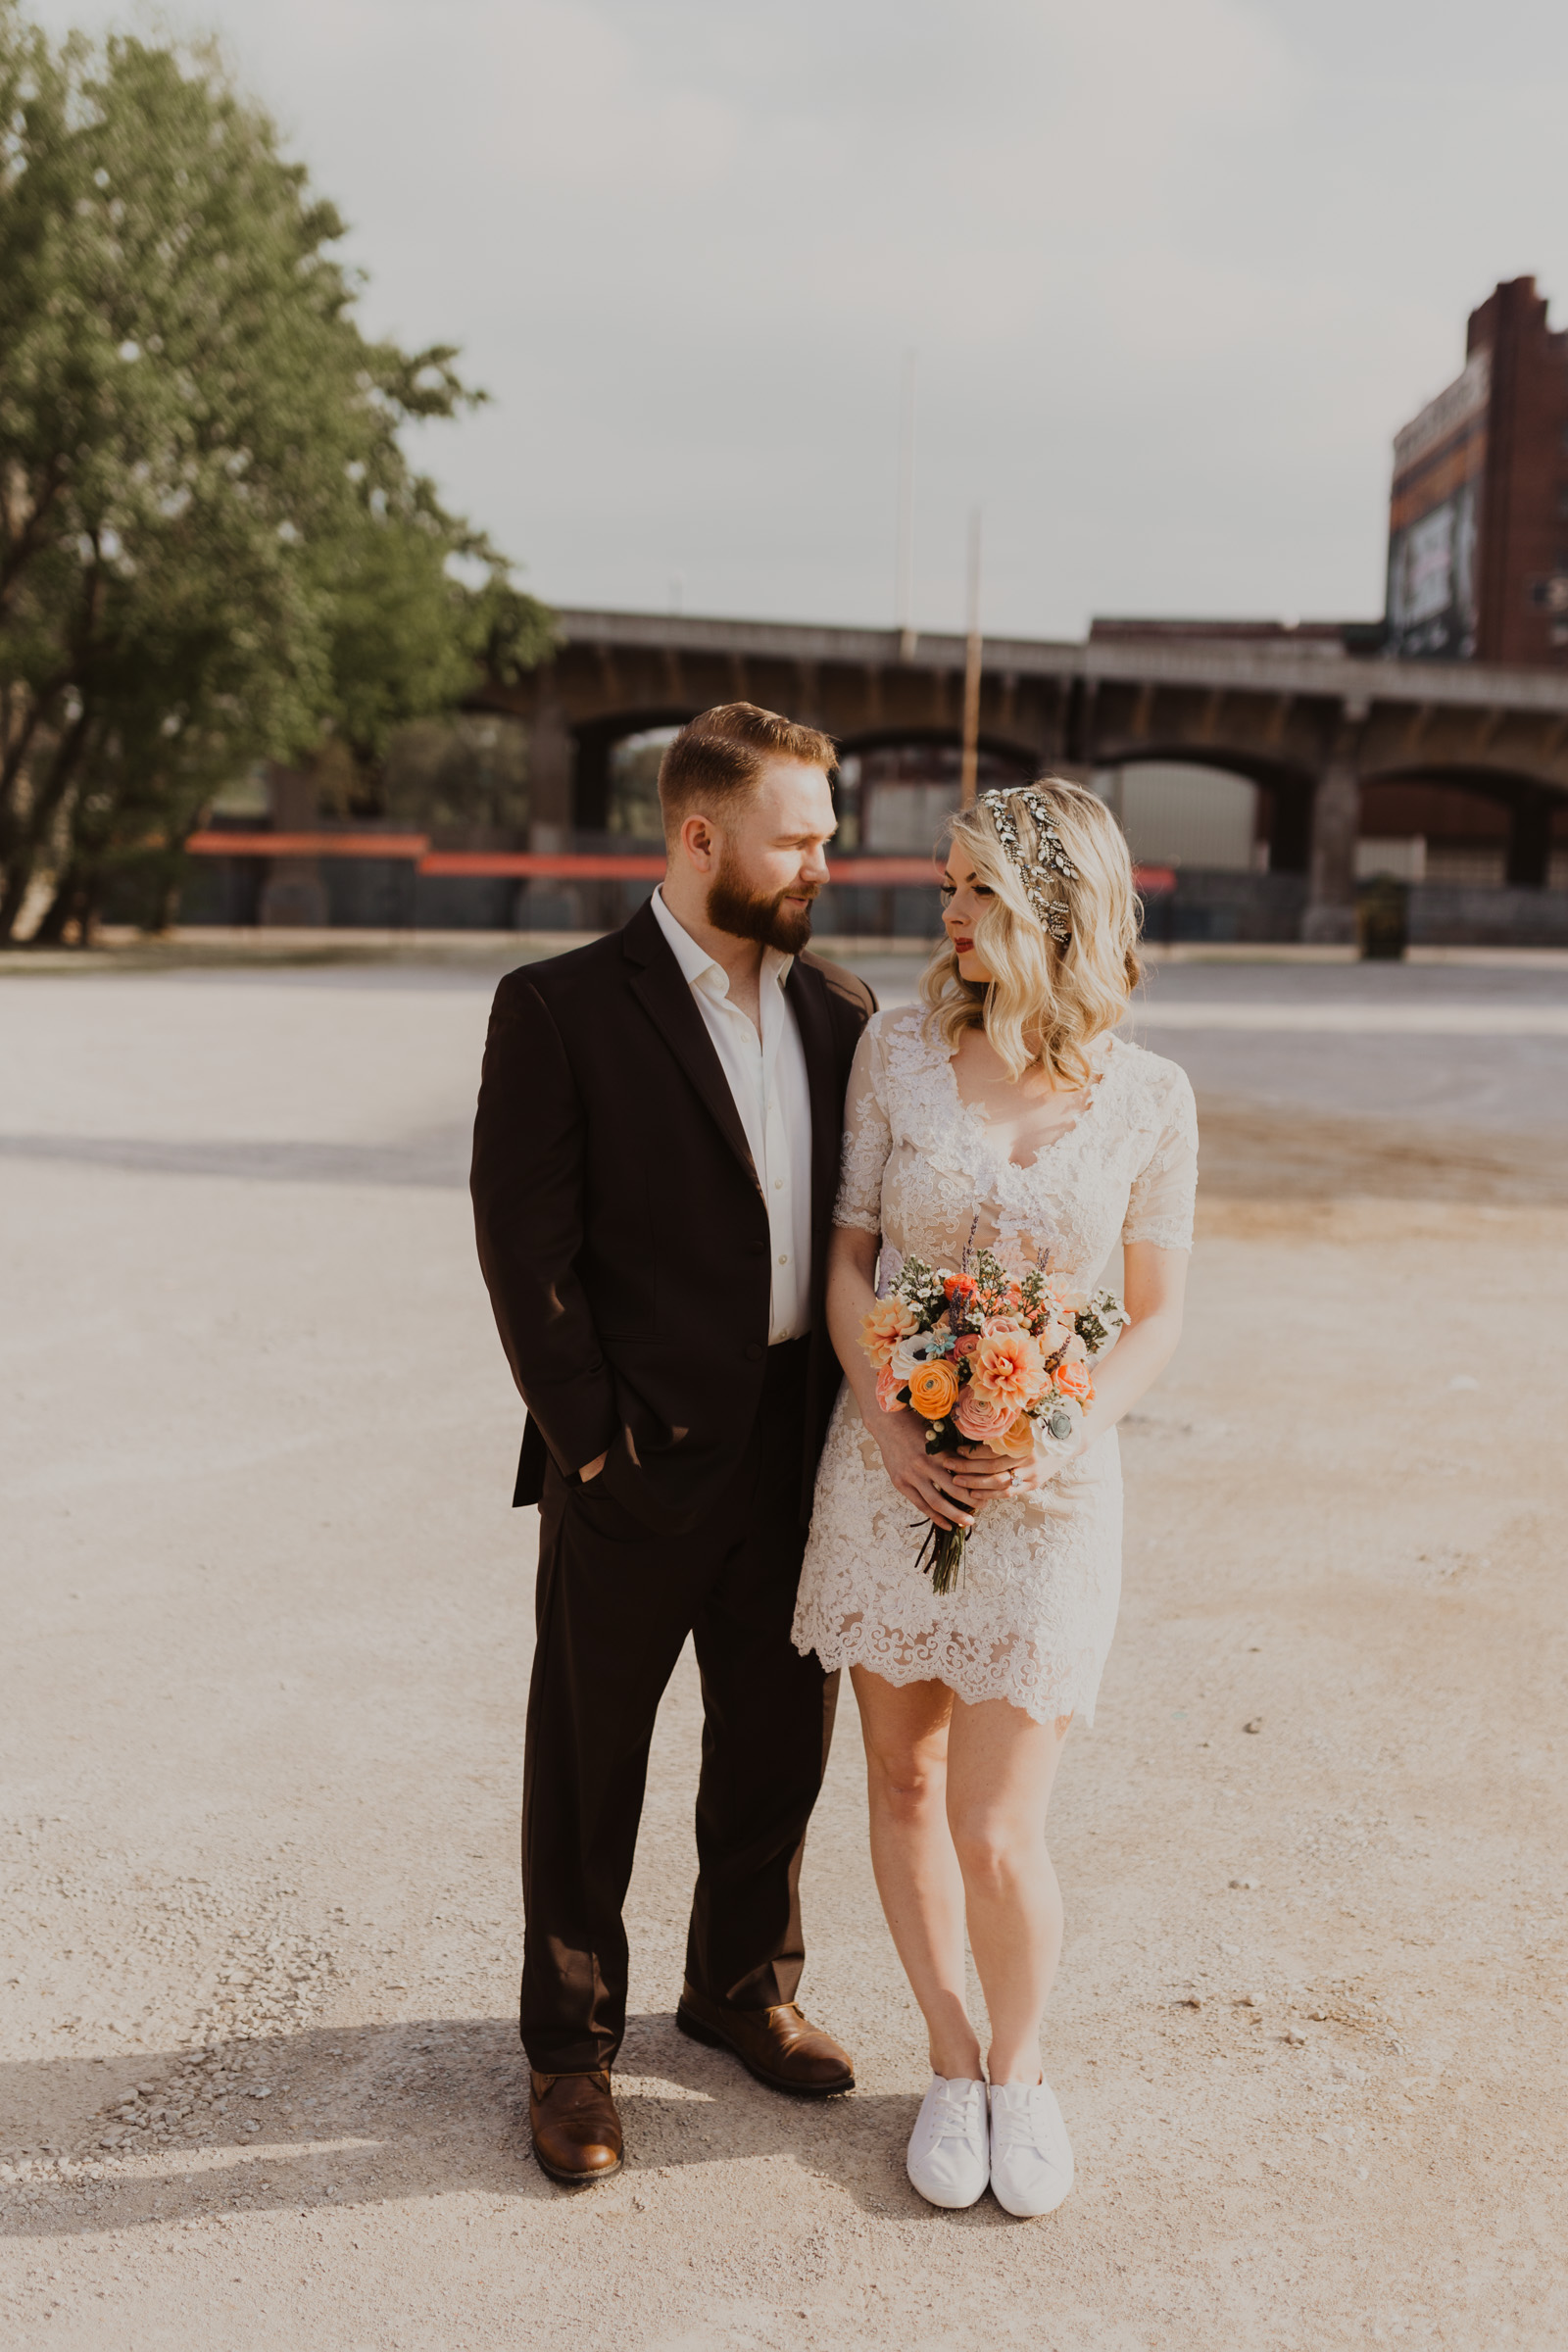 alyssa barletter photography styled shoot wedding inspiration kansas city west bottoms photographer motorcycle edgy intimate-28.jpg